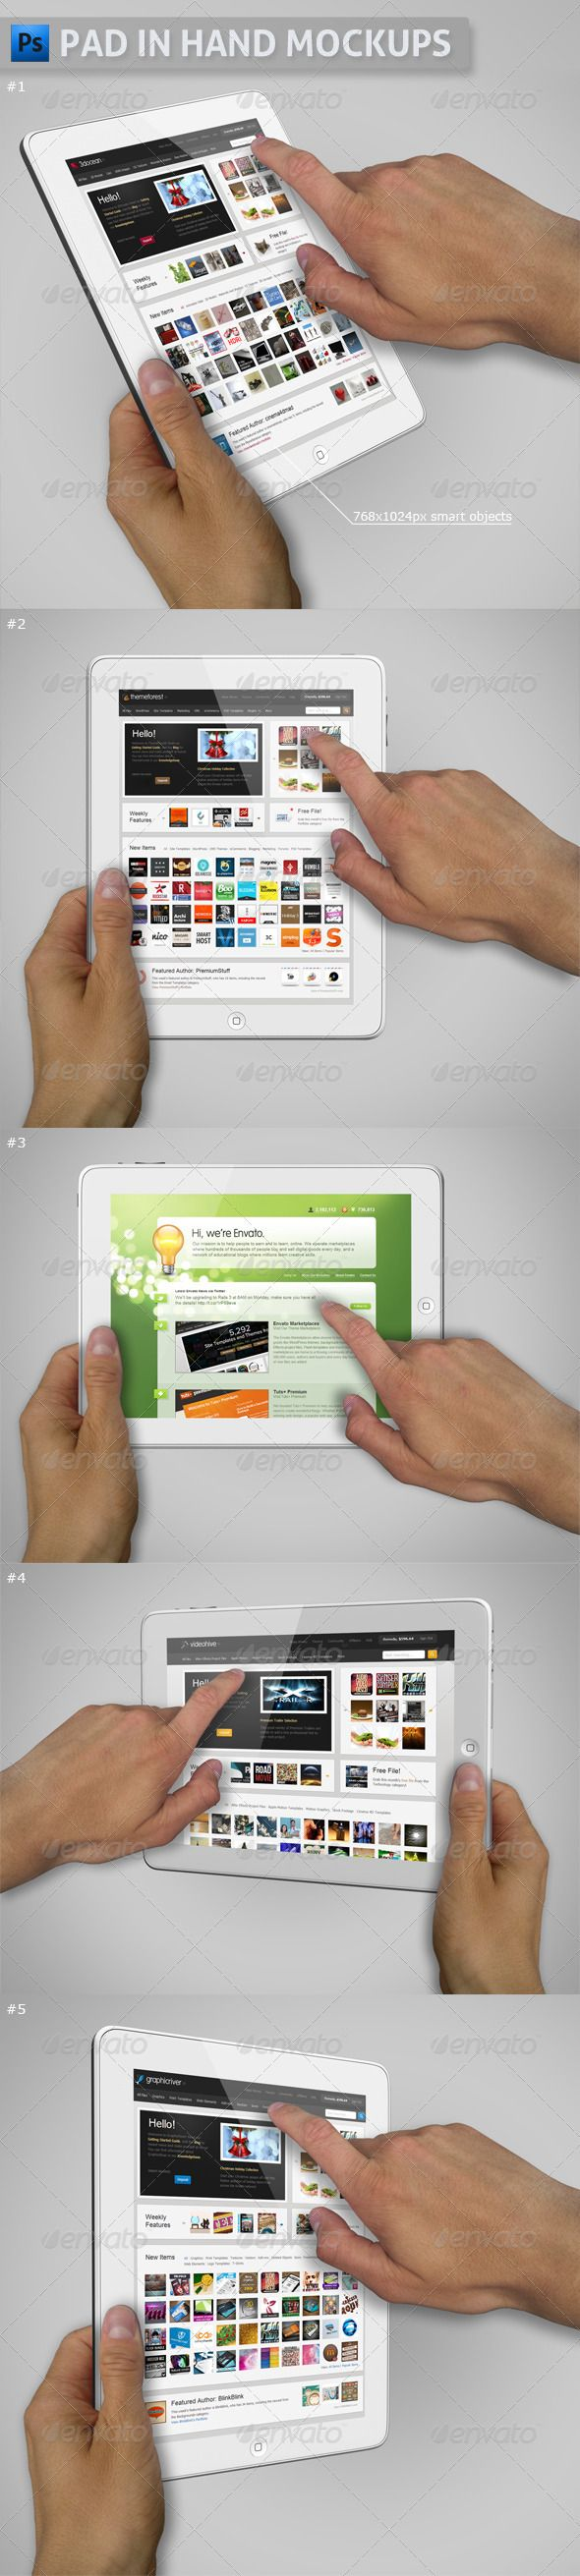 Pad in Hand Mockups GraphicRiver White Pad in Hand